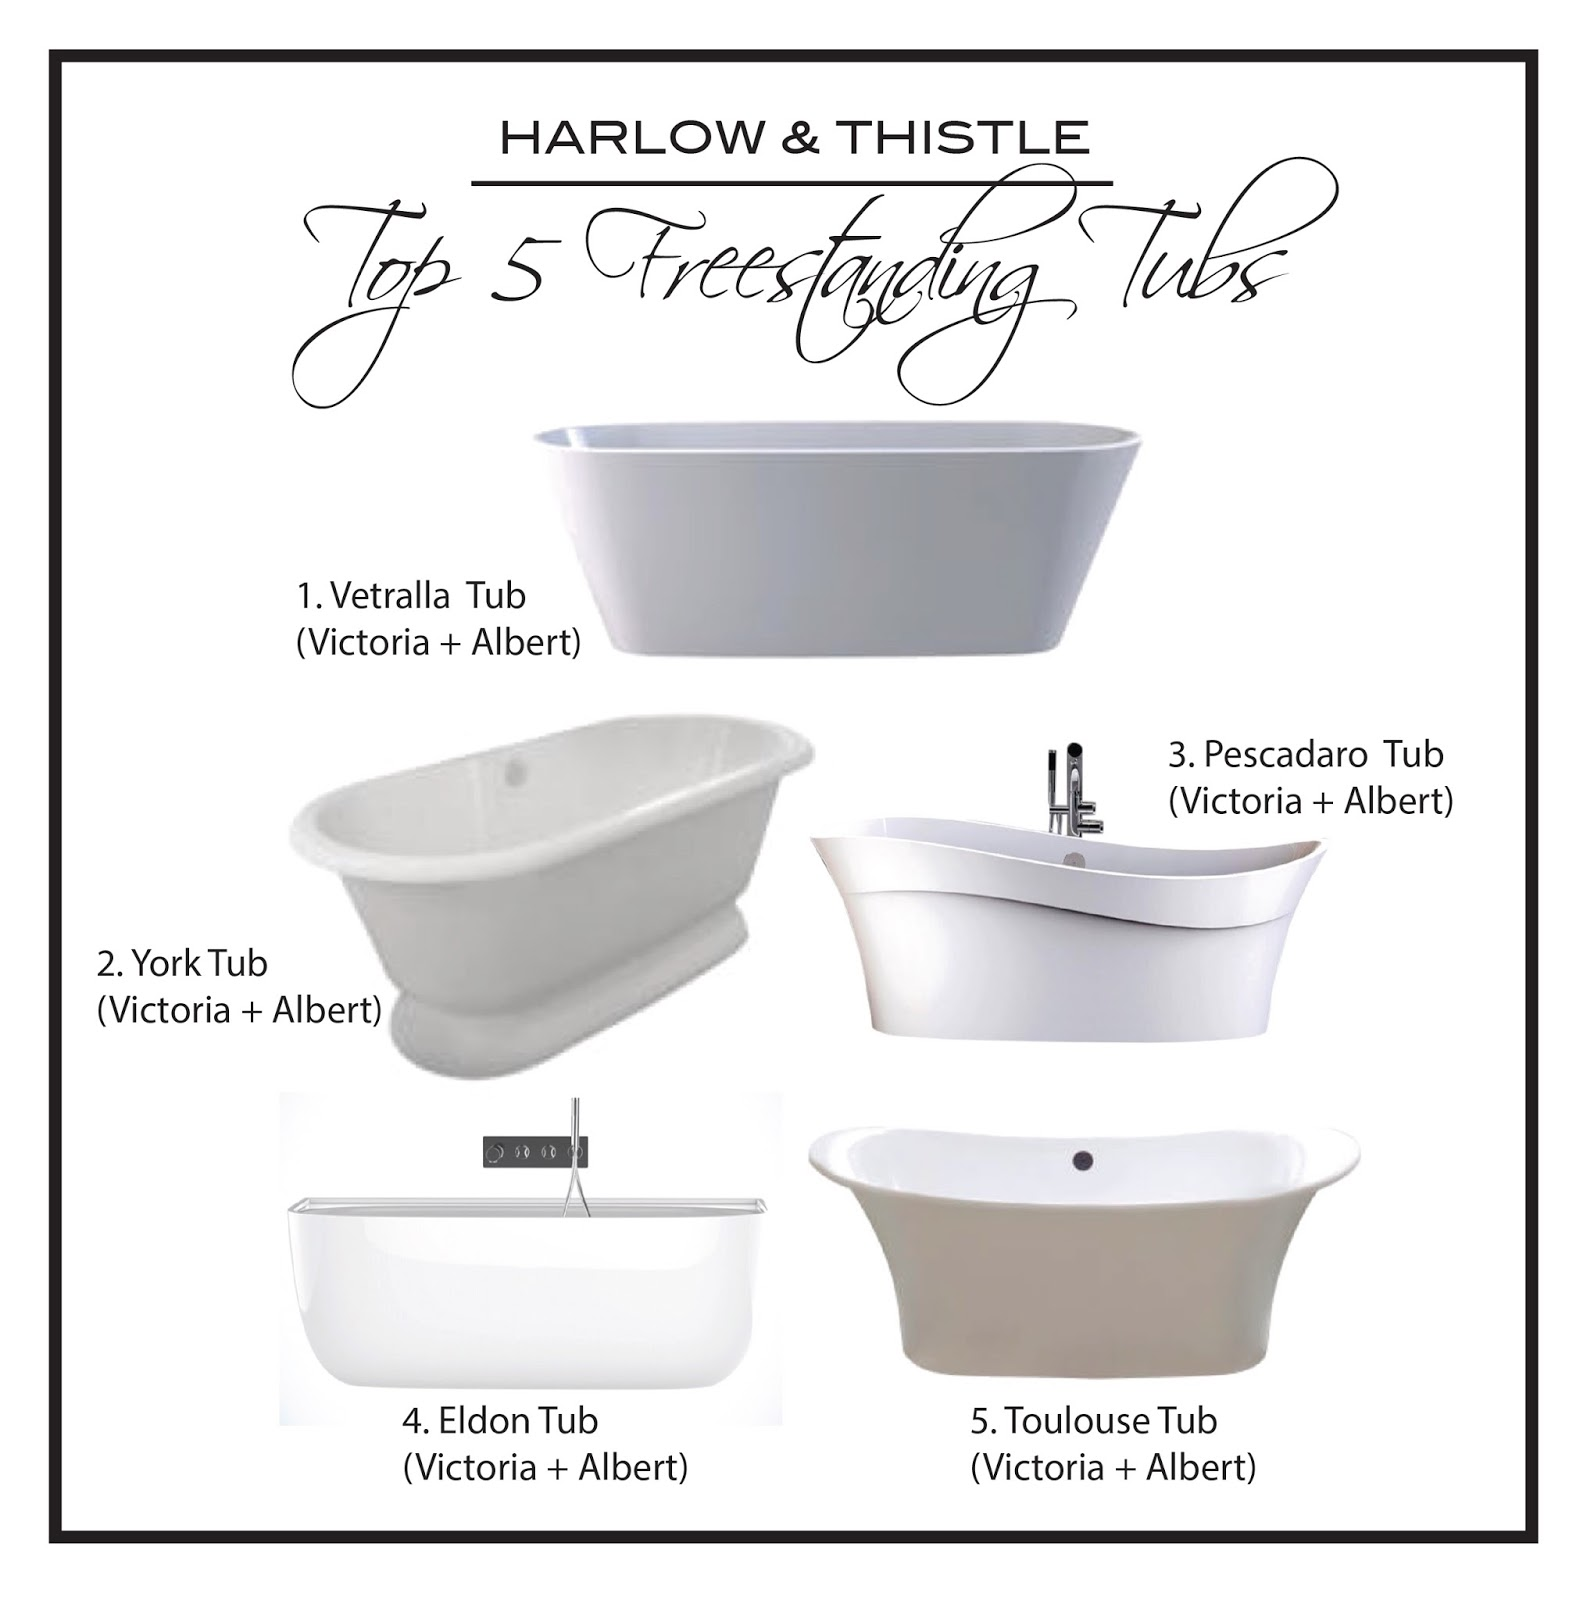 Top 5 Freestanding Tubs Victoria Albert Harlow And Thistle